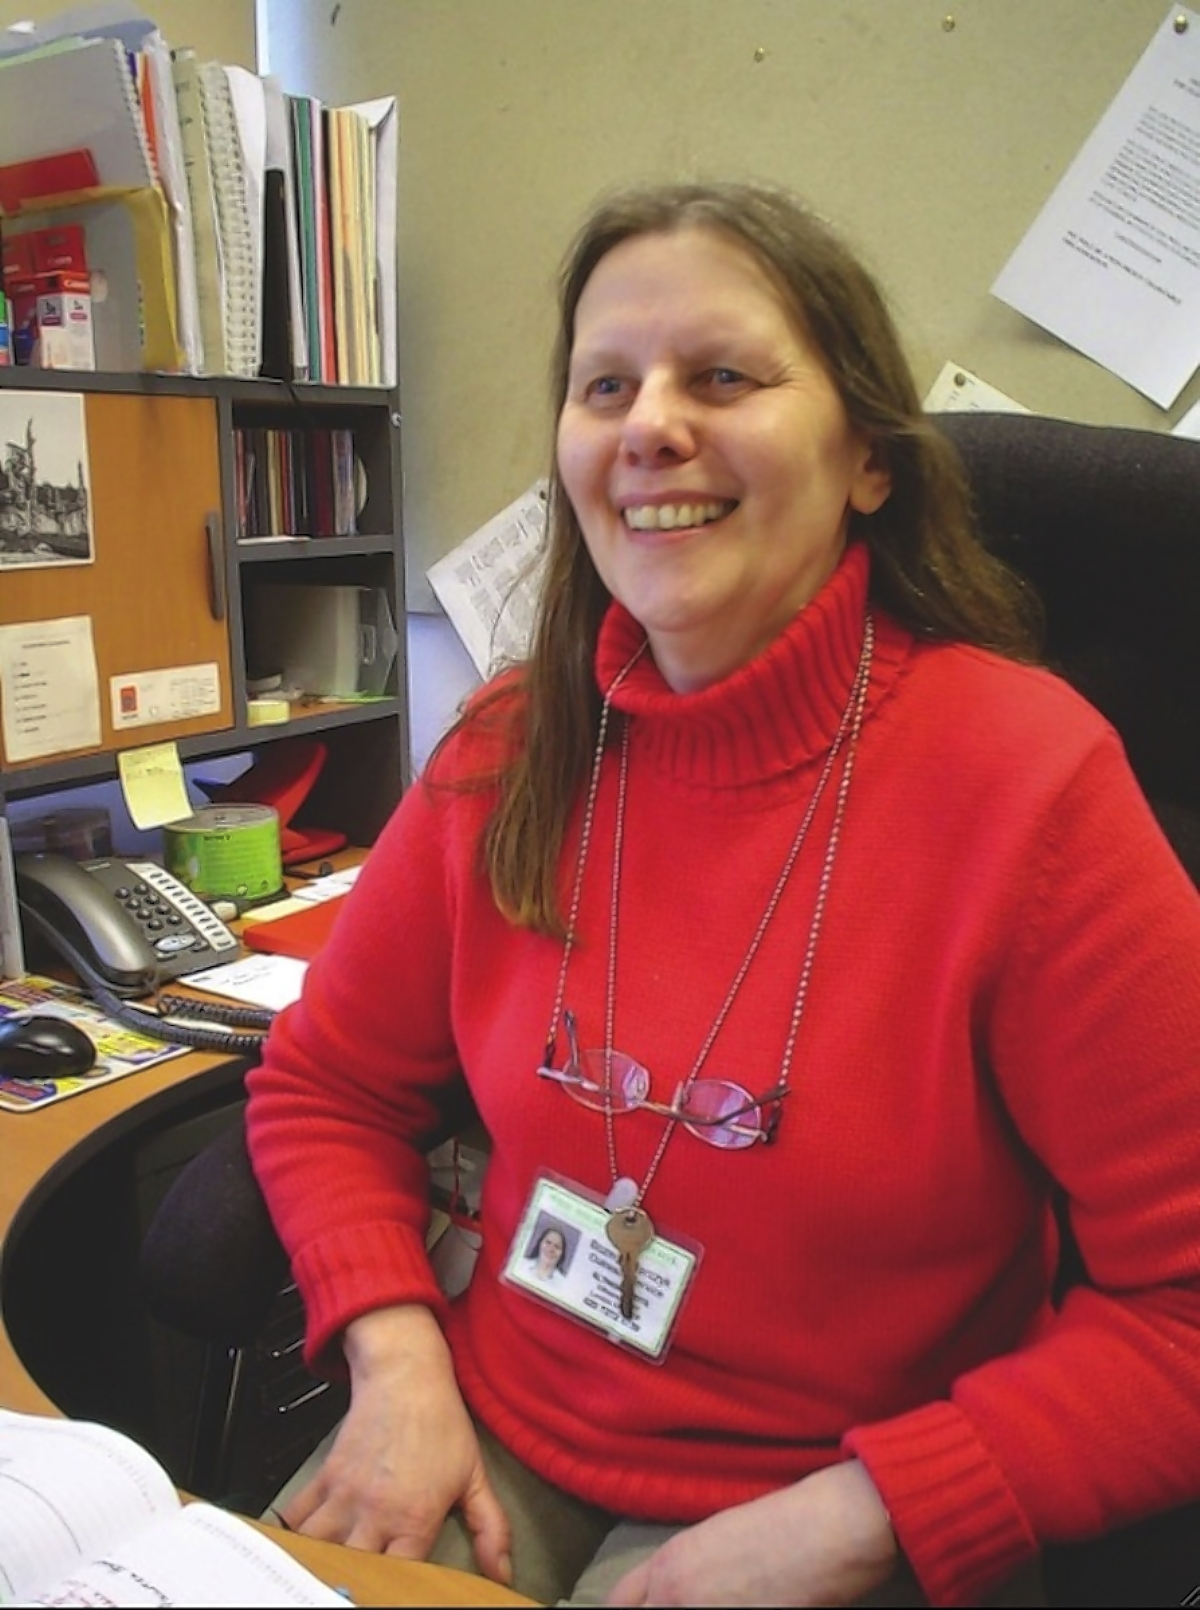 Bozena Marczyk, of Mill Hill, has been nominated for the National Autistic Society's awards